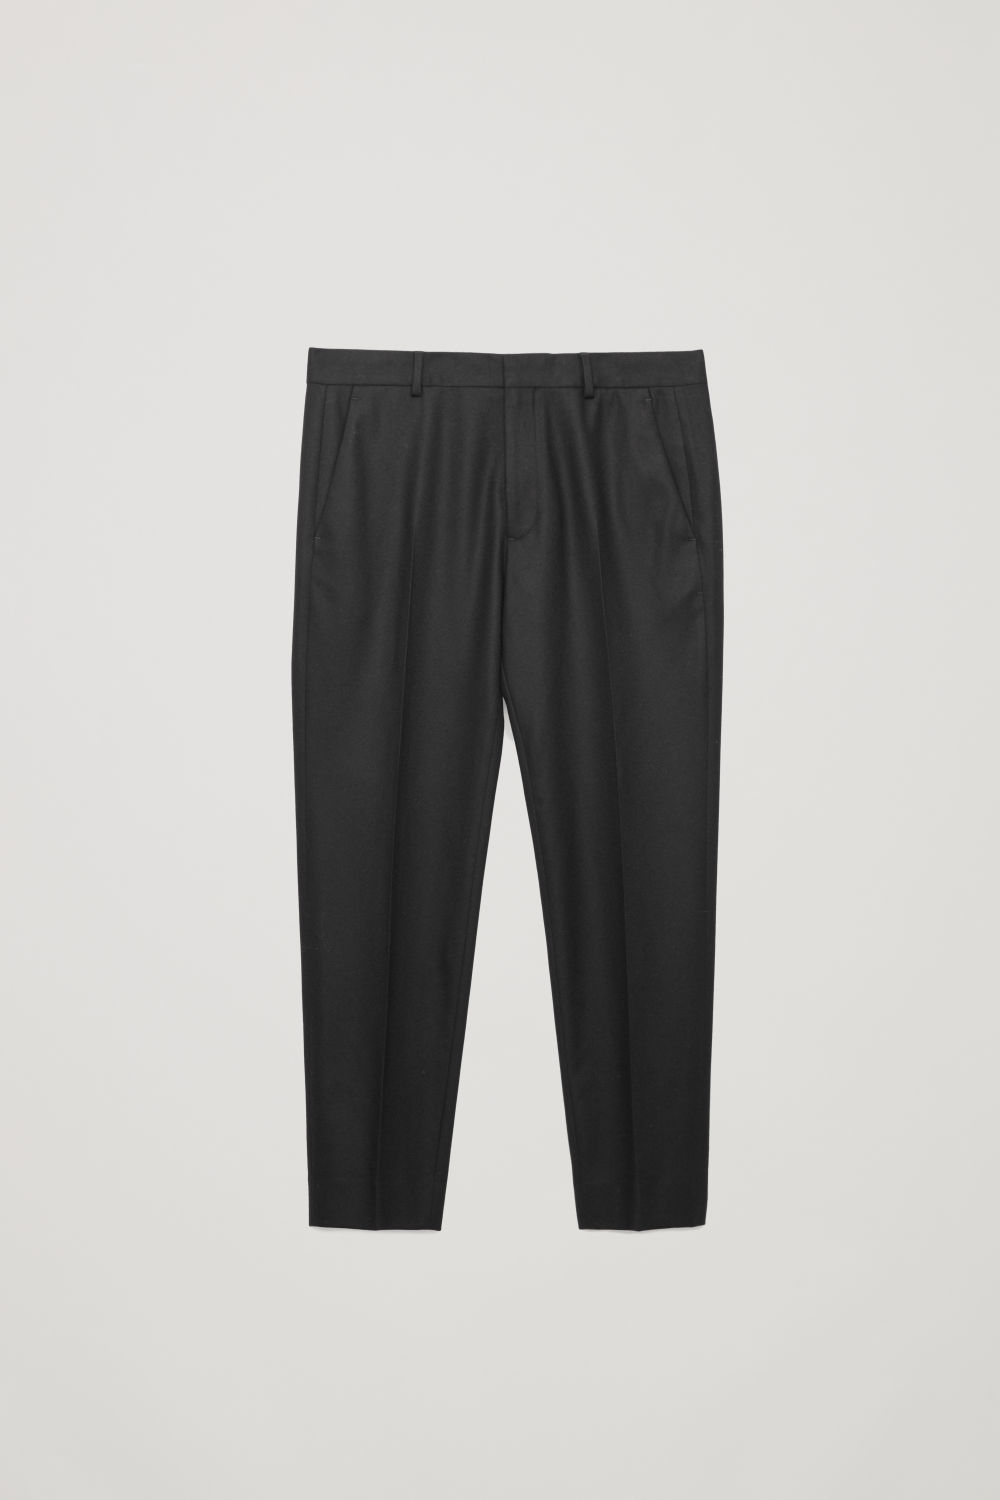 WOOL PRESSFOLD TROUSERS